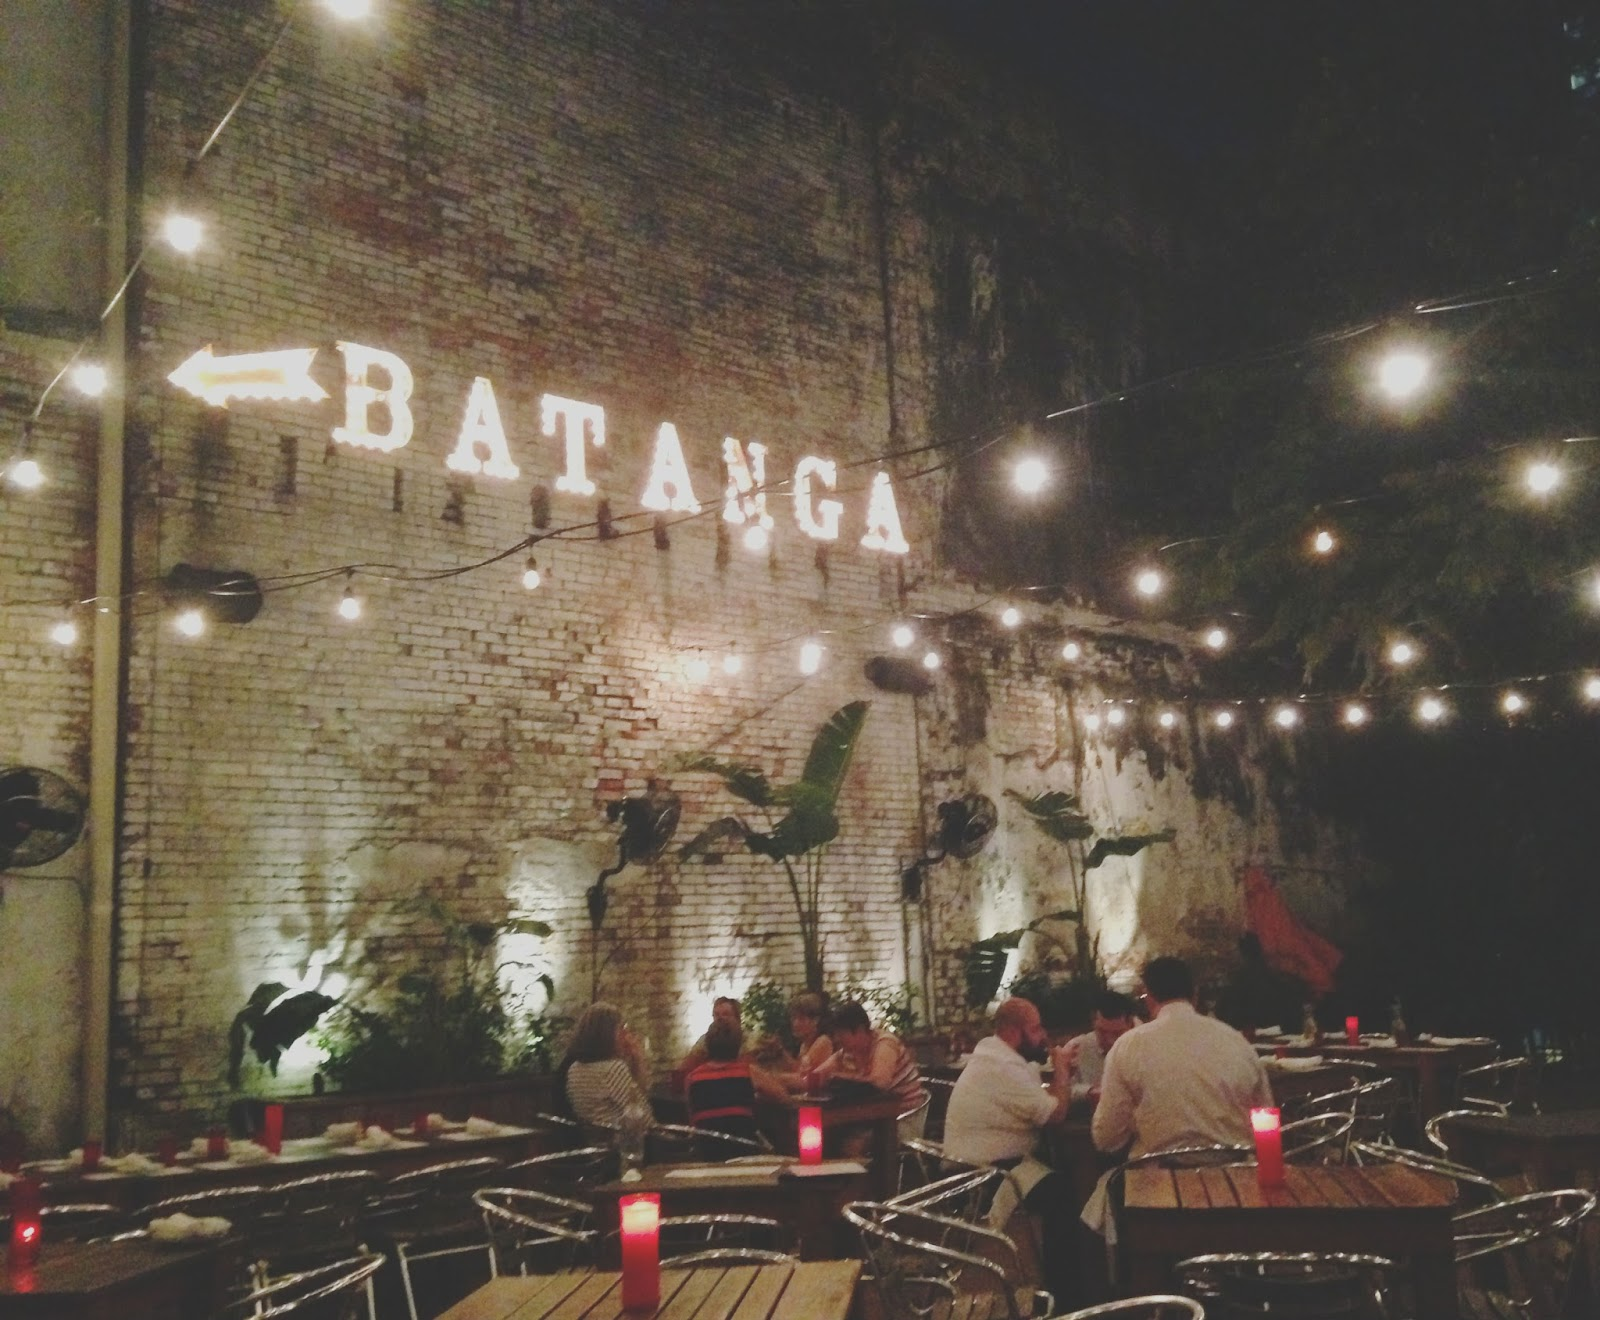 houston food - batanga patio